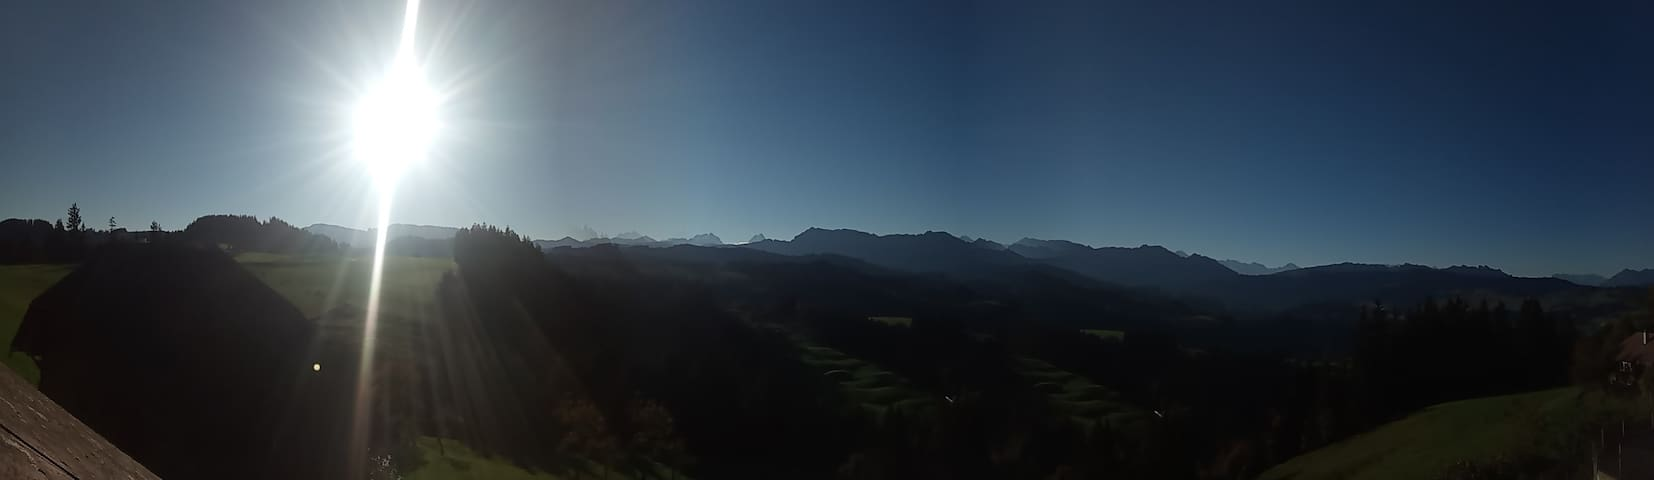 Panorama am Morgen